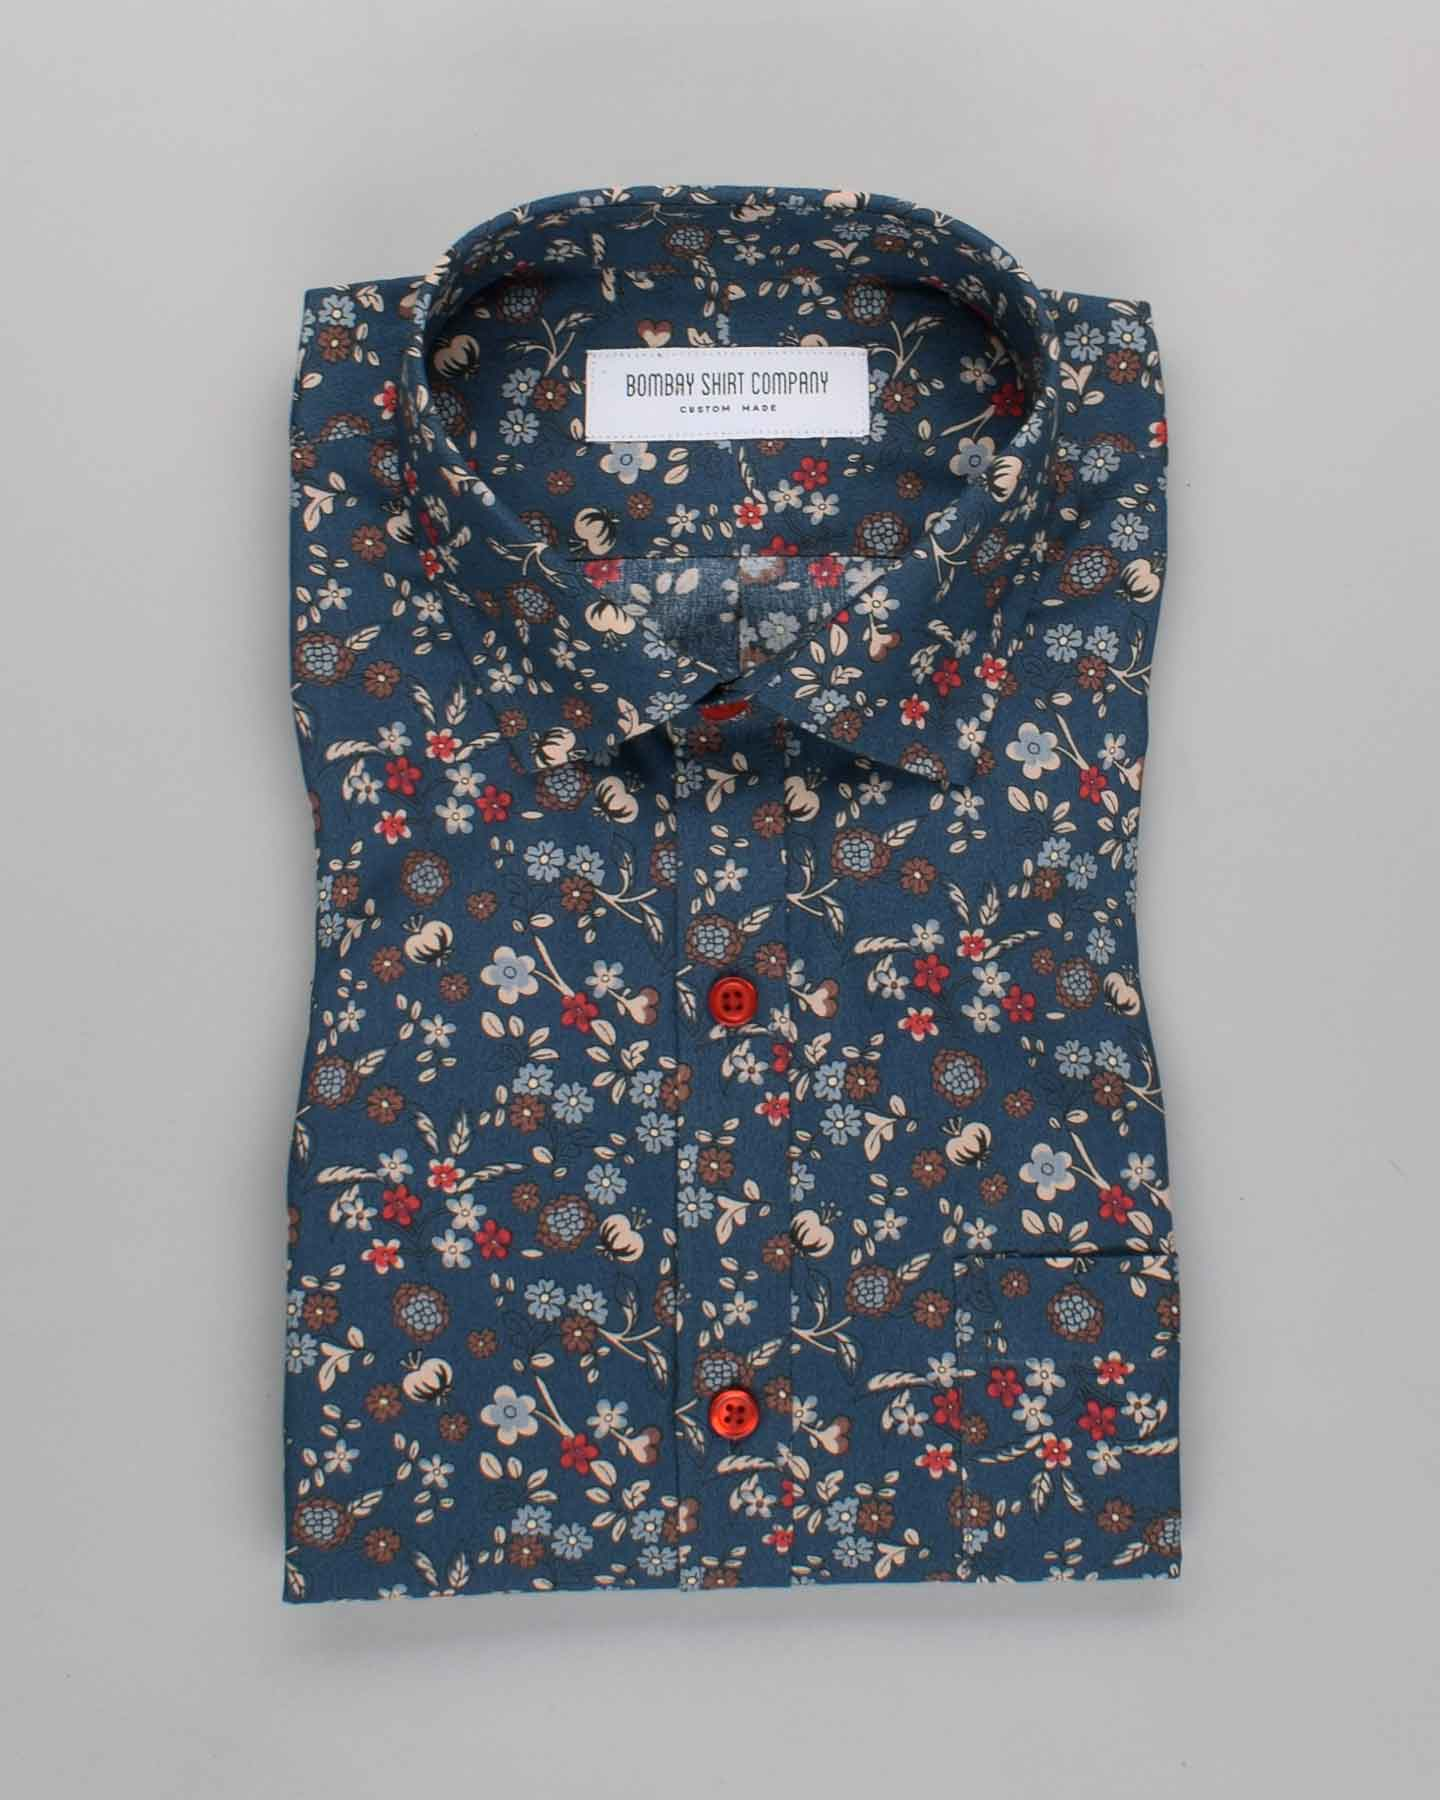 Carlo Bassetti Moonlight Serenade Print Shirt